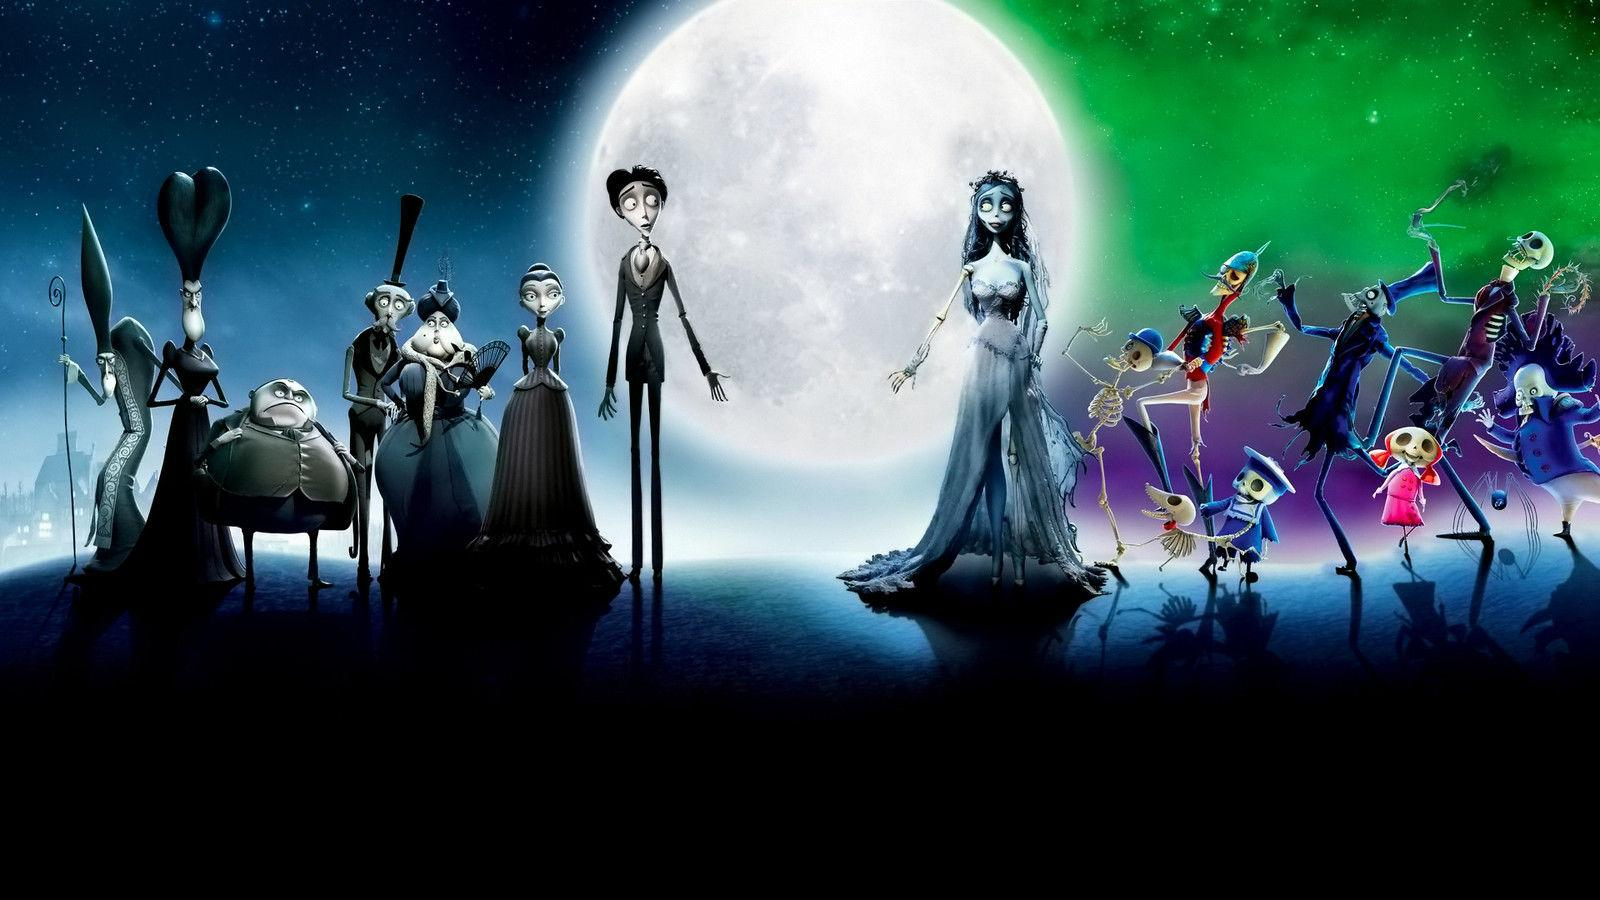 PRINT IMAGE PHOTO FAMOUS TIM BURTON 24X36 THE CORPSE BRIDE MOVIE POSTER PW0